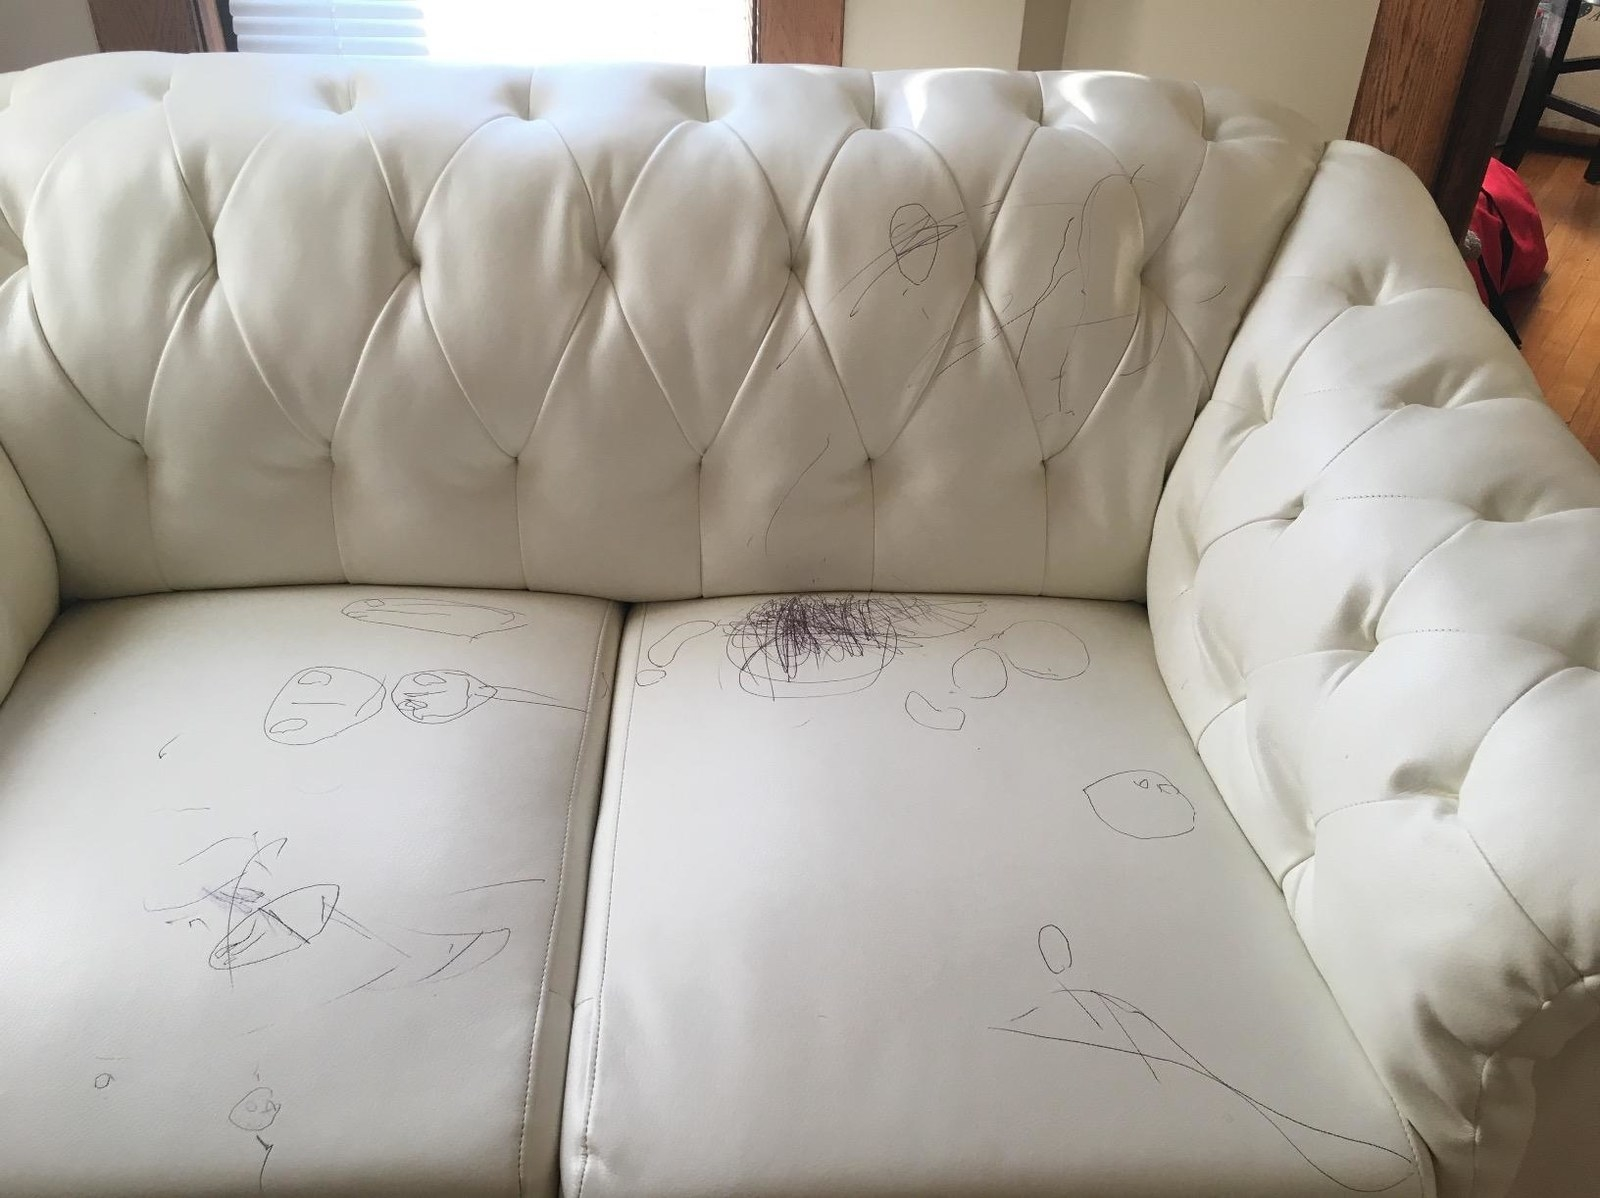 best thing to clean cream leather sofa berkline recliner and loveseat costco 17 cleaning products that 39ll give you dramatic before